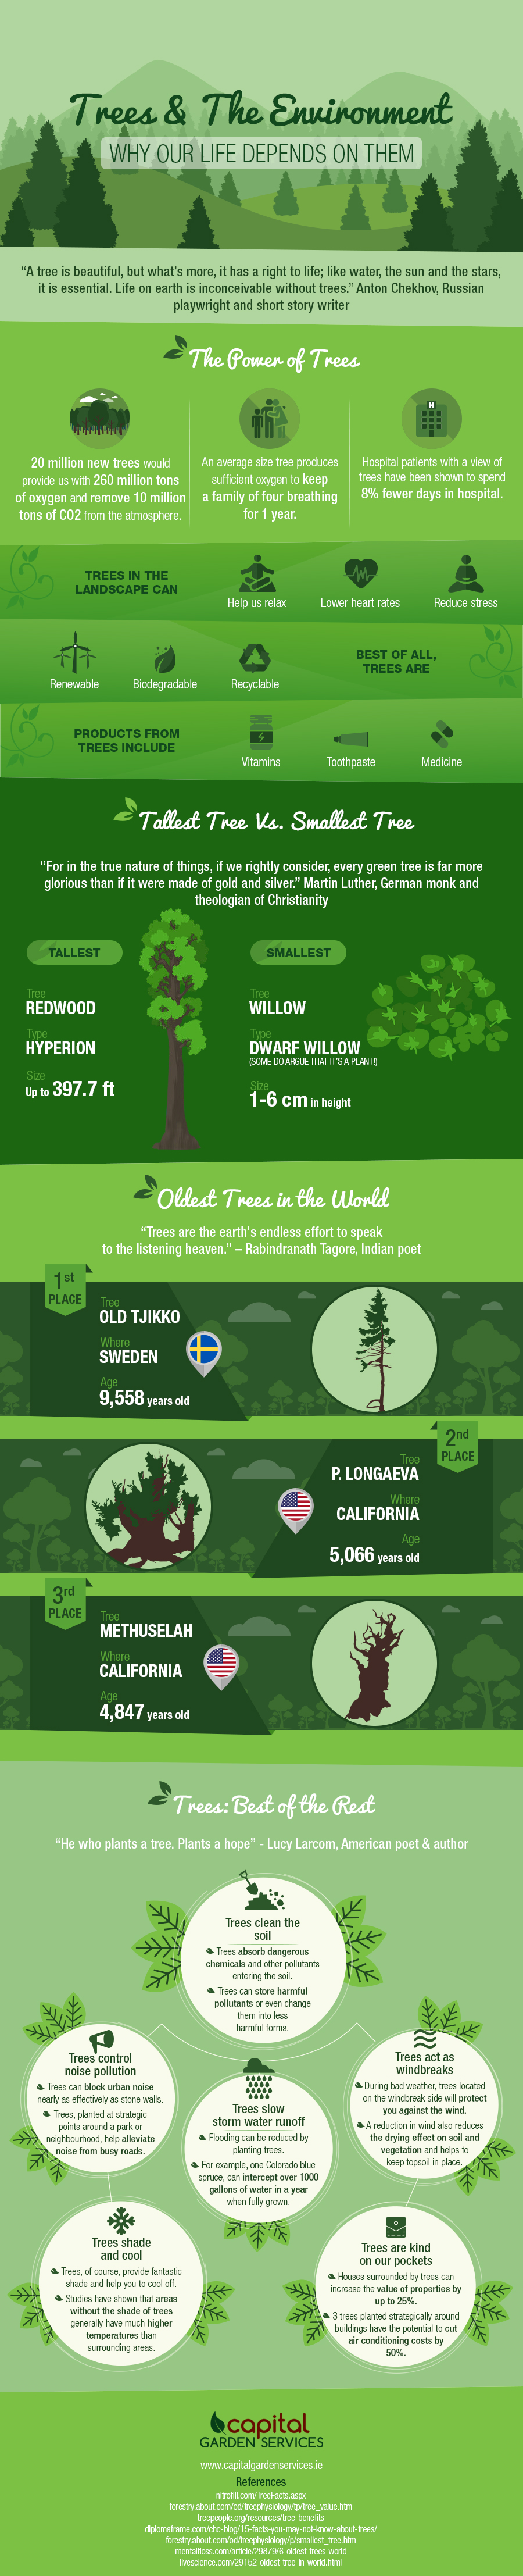 Trees & The Environment: Why Our Life Depends On Them Infographic